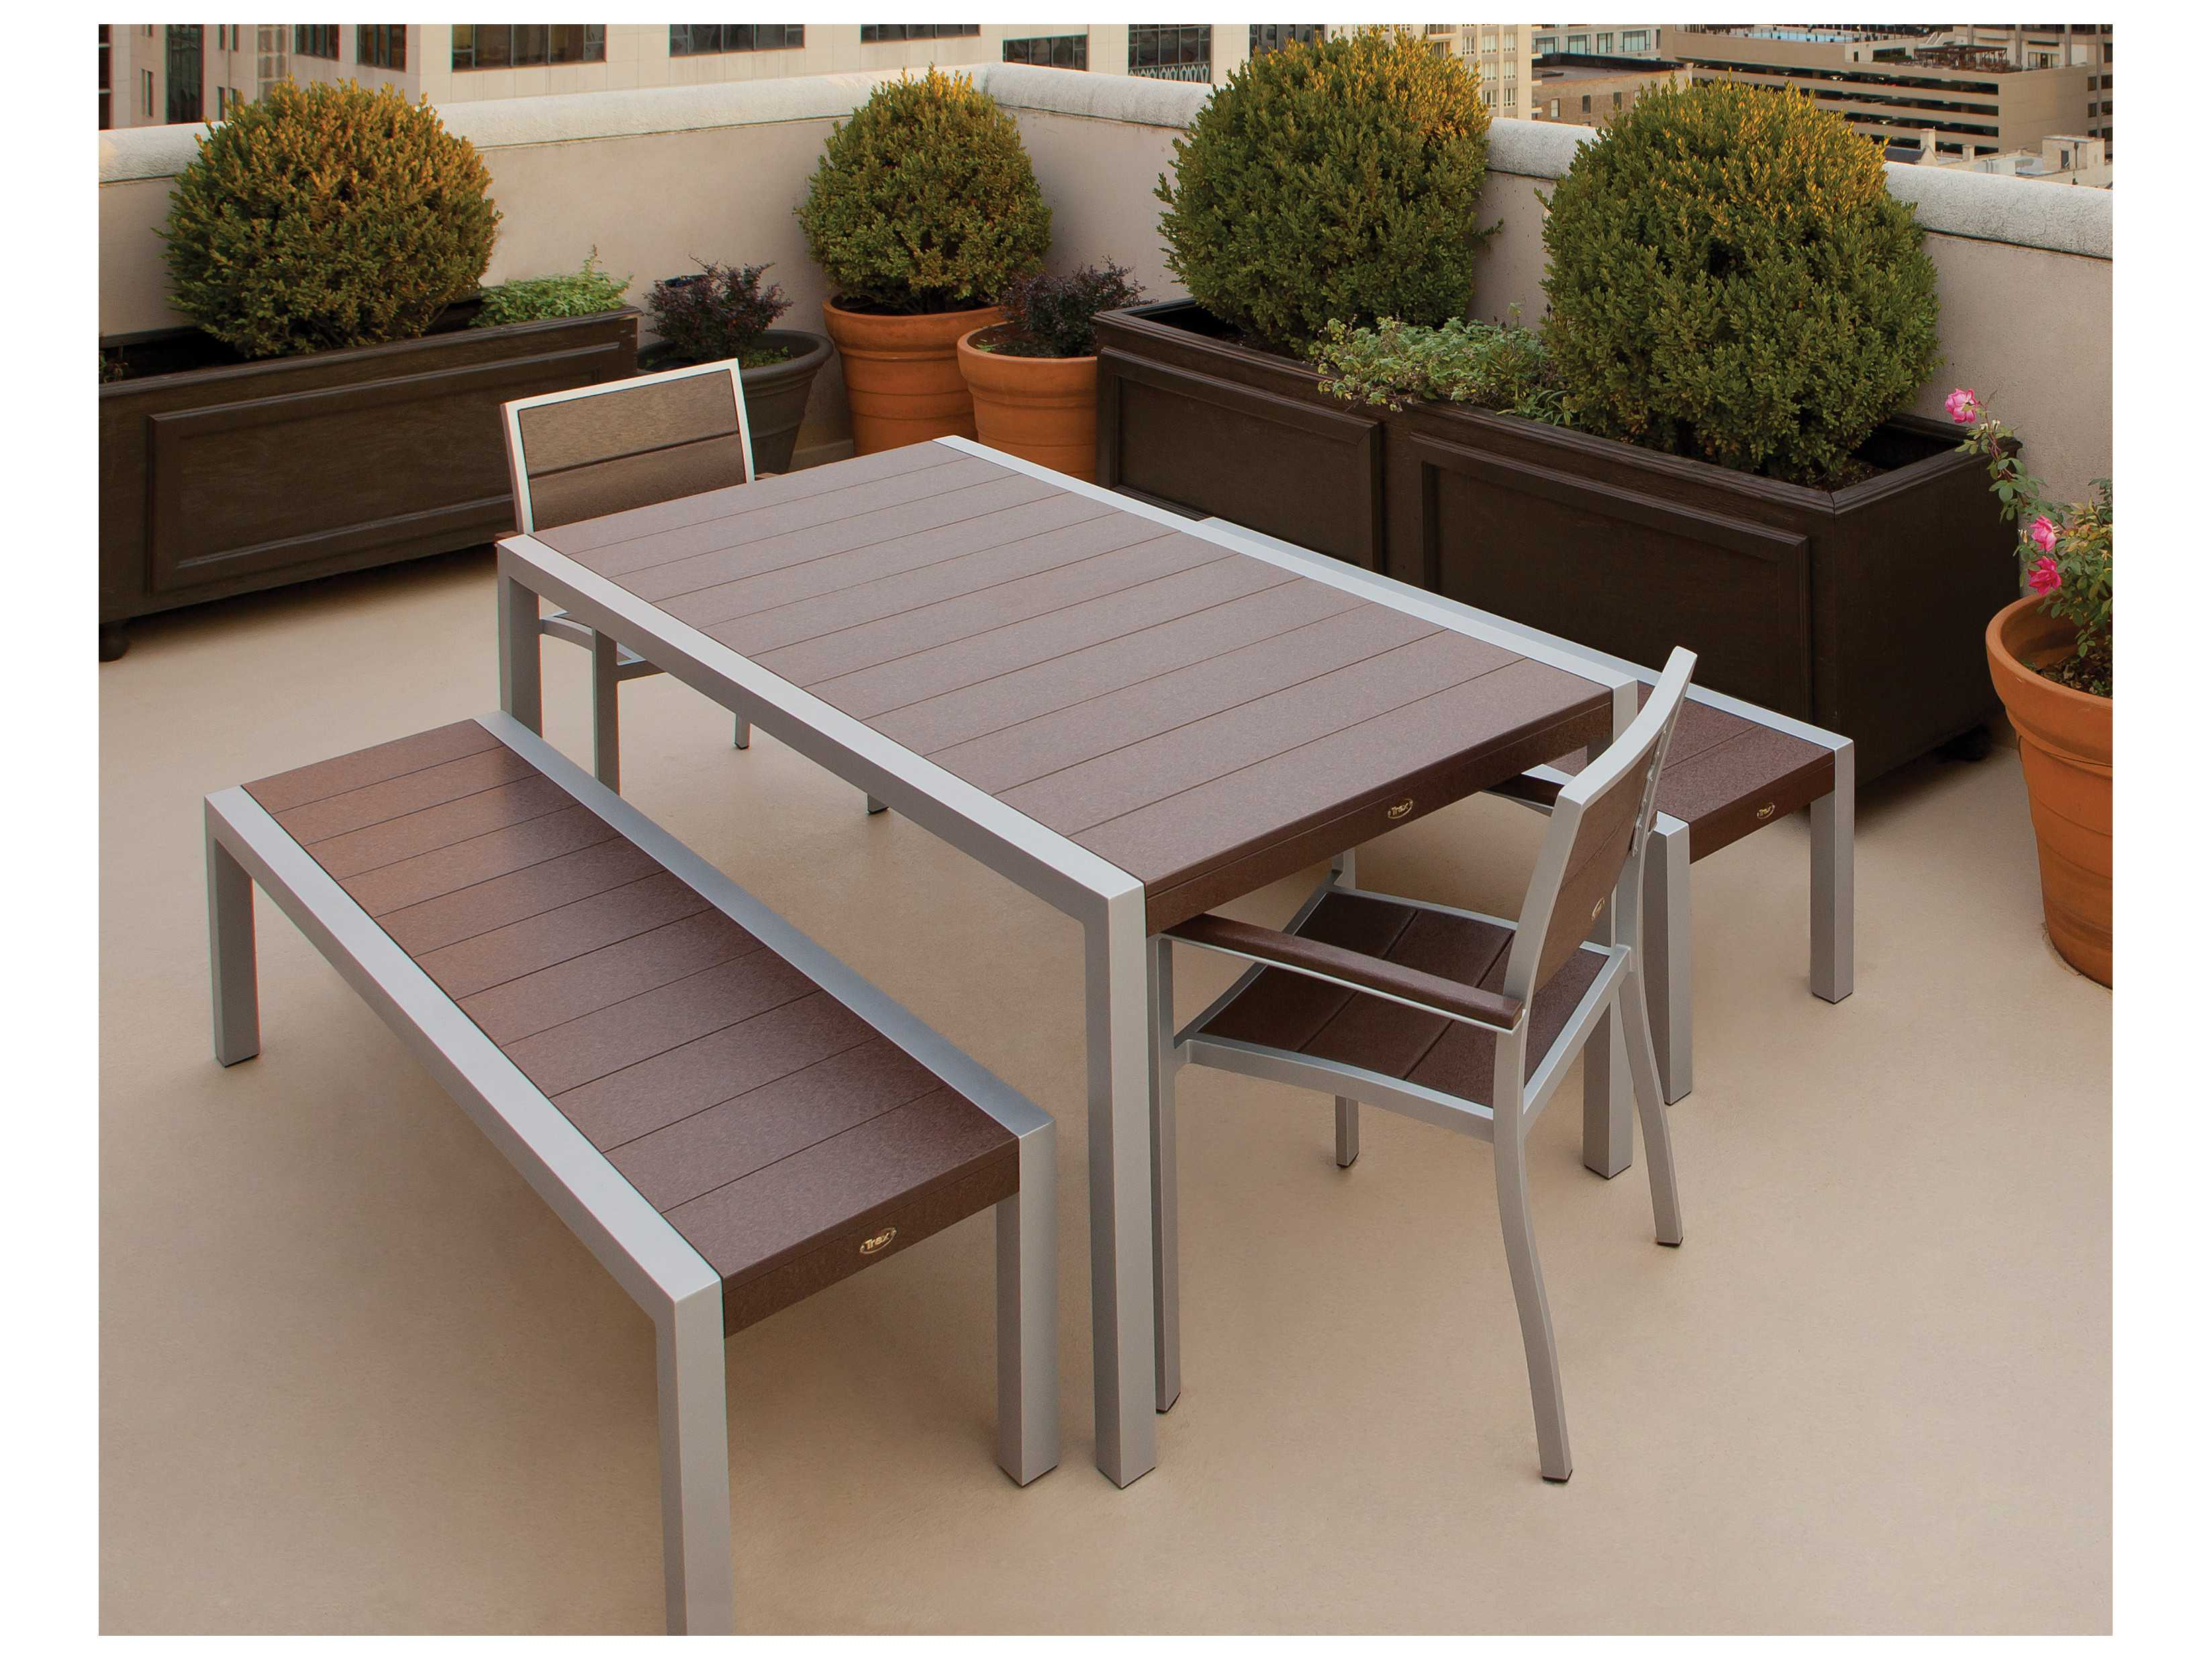 Trex Surf City Recycled Plastic 5 Piece Bench Dining Set